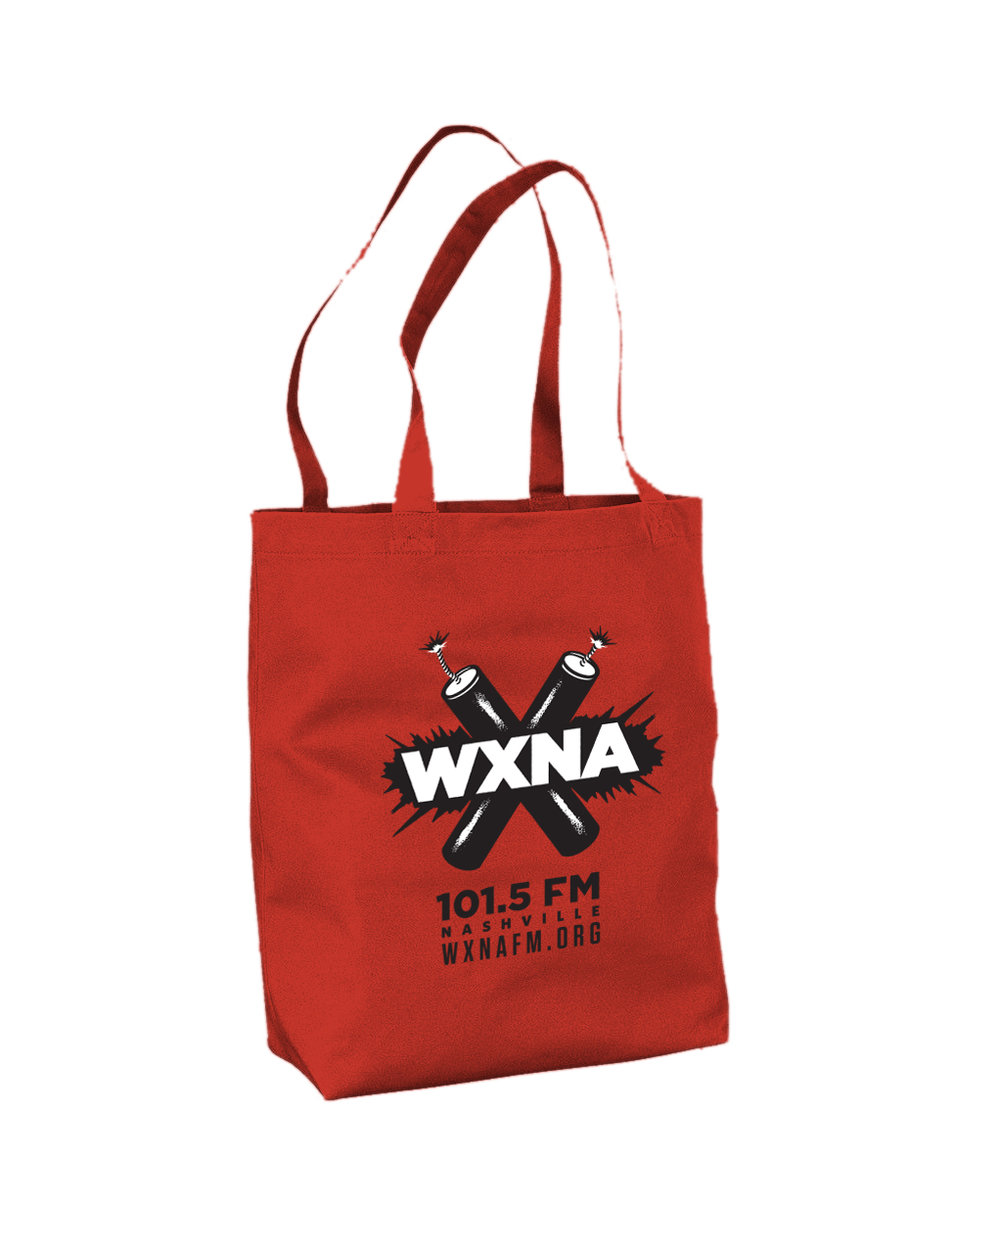 Donate $101.5 or more and we'll send you a fabulous red WXNA tote bag. Divide your donation into 12 monthly installments, and that's only $8.46 per month to support your favorite freeform community radio station! - Plus you'll receive our awesome limited-edition sticker and new beverage huggie!